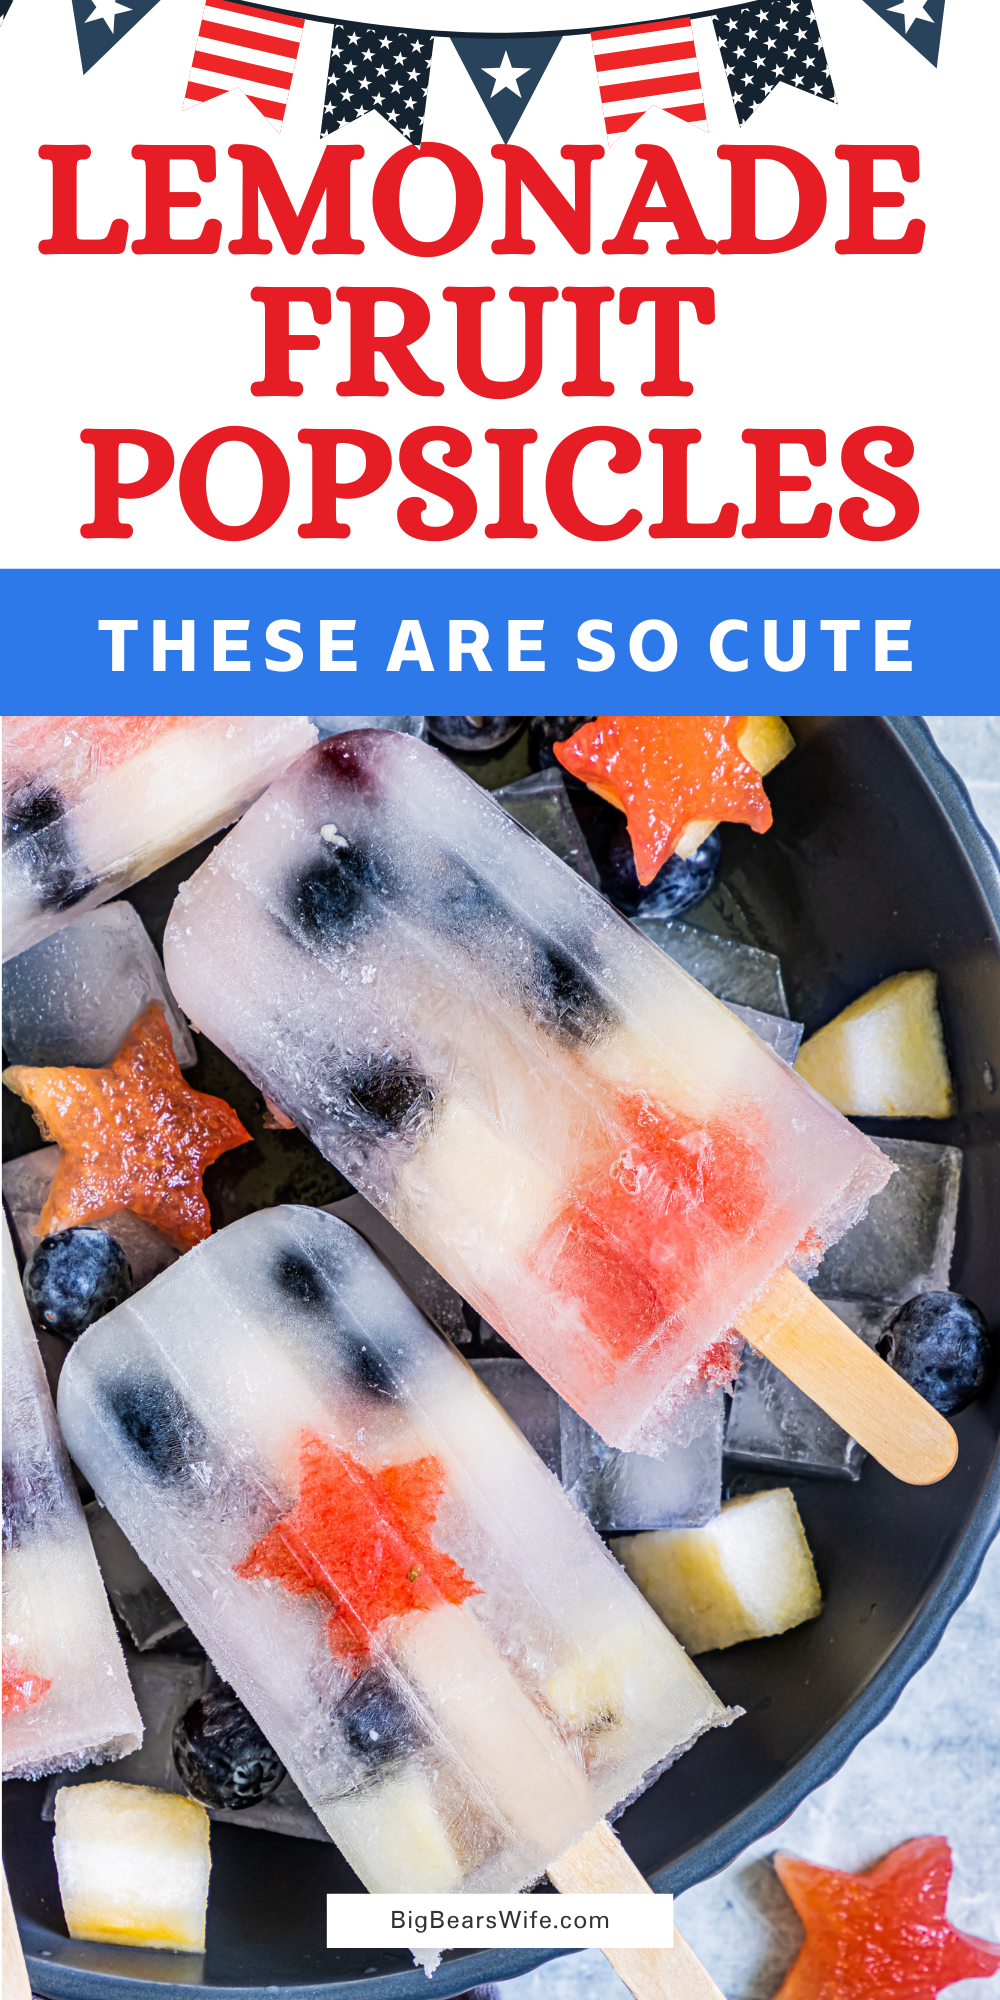 These Lemonade Fruit Popsicles are homemade Fruit Ice Pops that perfect for cooling off on a hot summer day and they're super fun to make with lemonade and whatever fruit you have around the house. via @bigbearswife